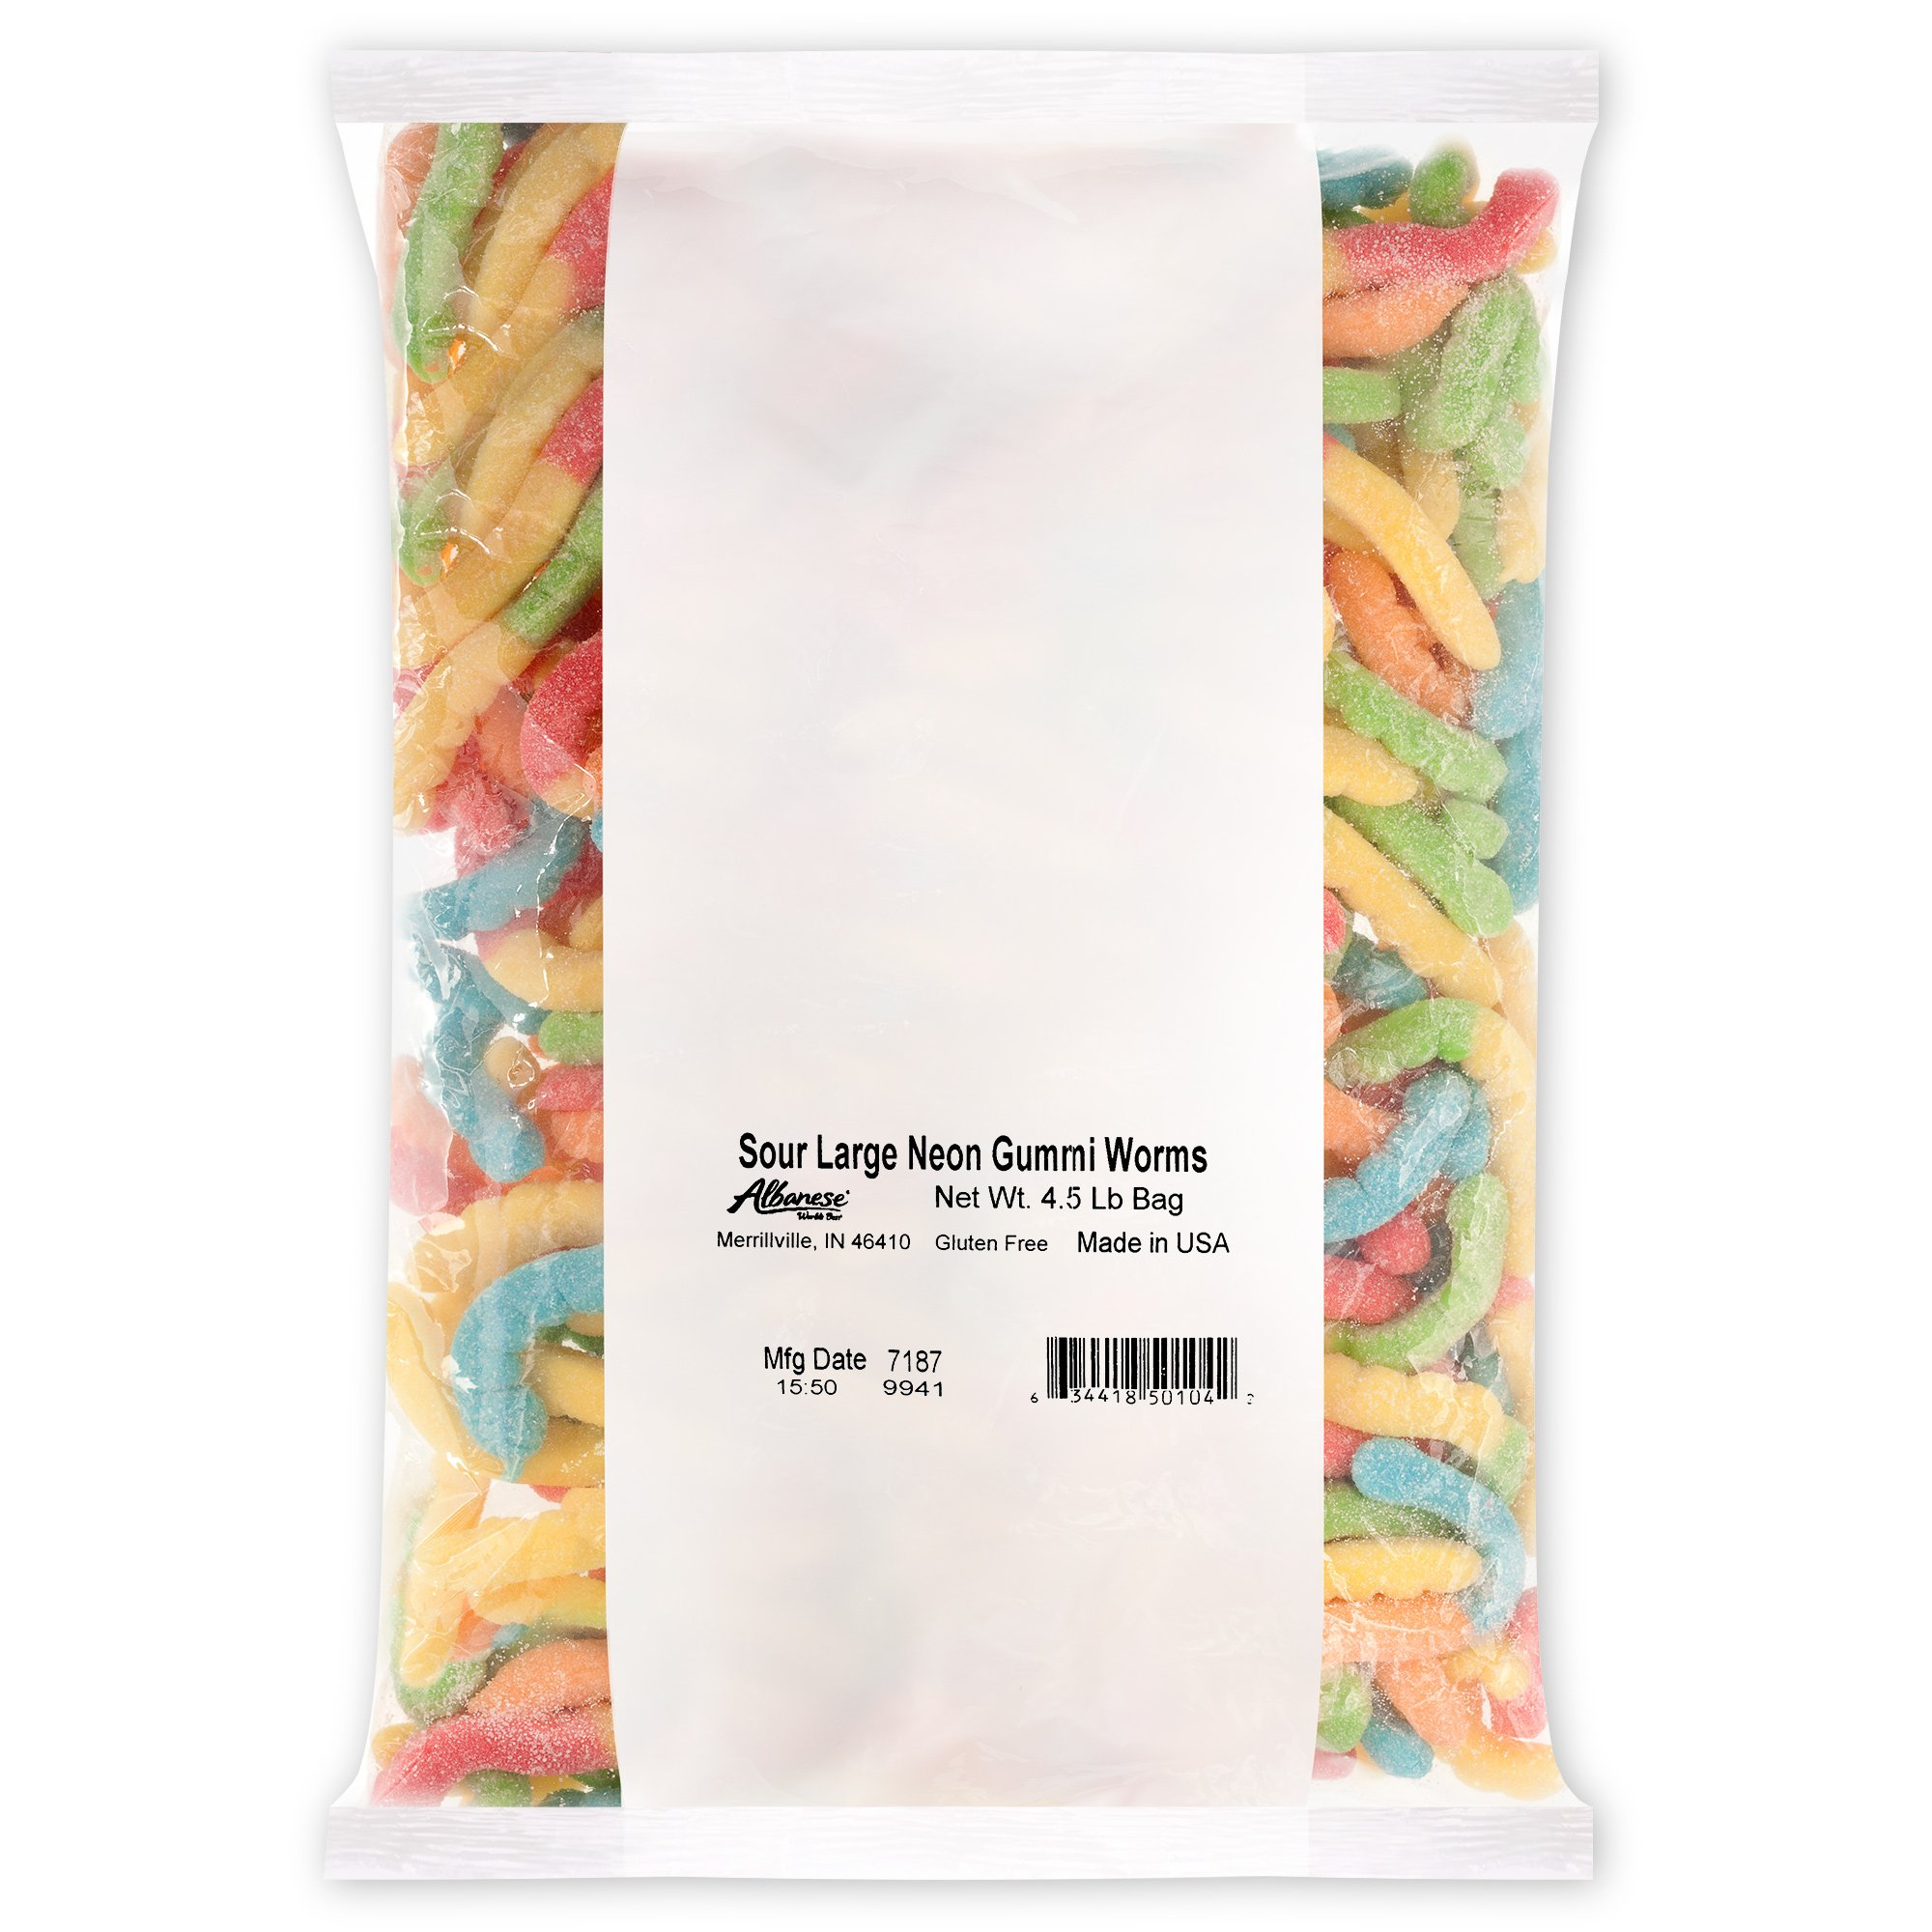 Albanese Candy Sour Large Neon Gummi Worms 4.5 Pound Bag Gummi Candy, Assorted Flavors: